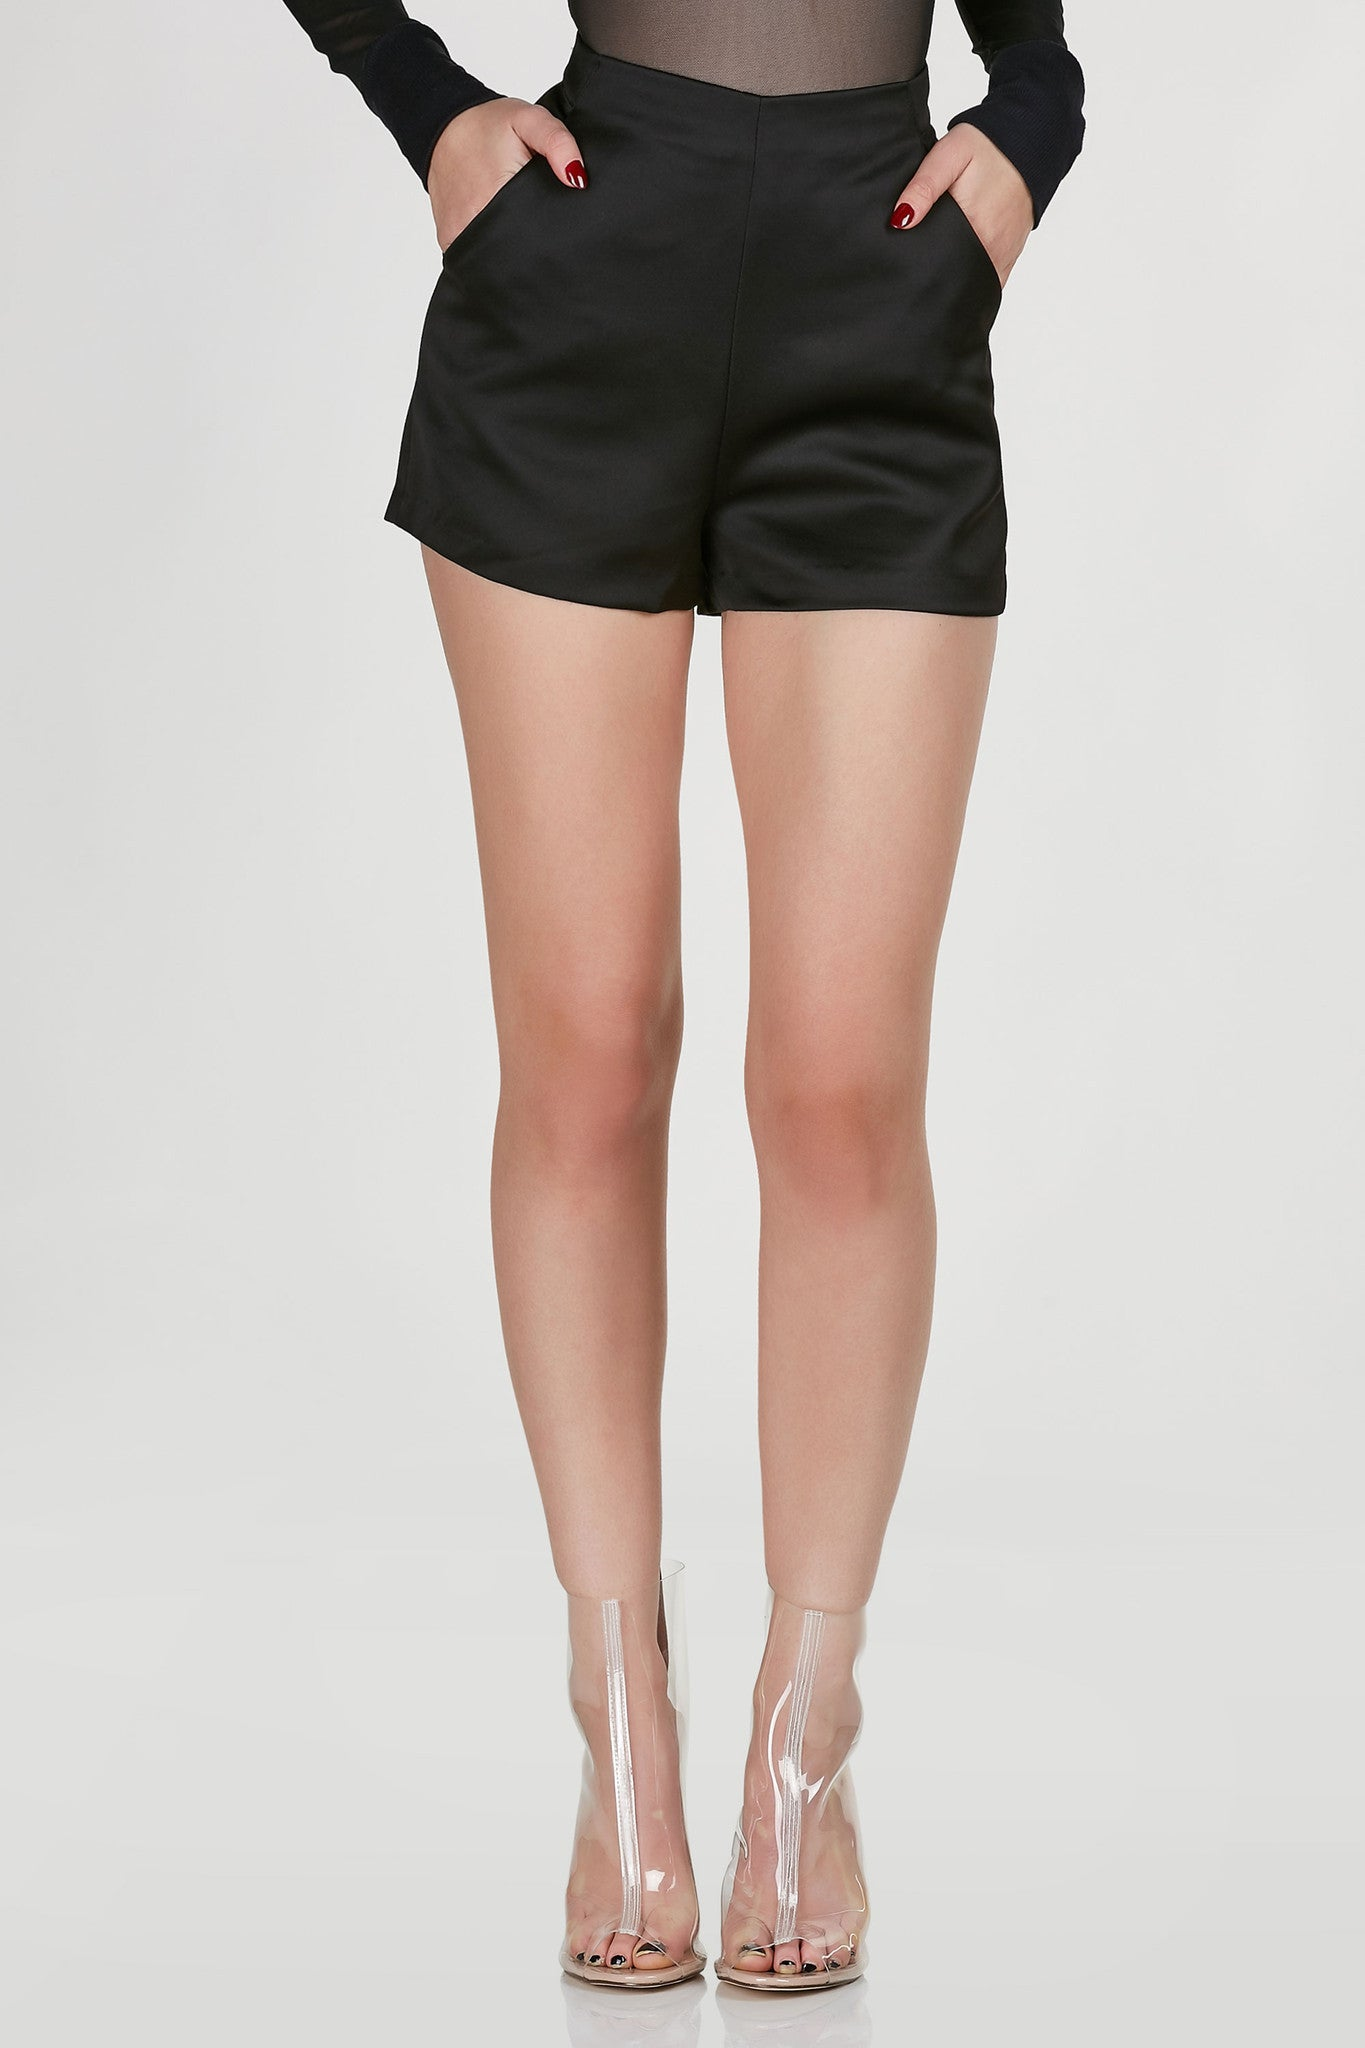 High rise shorts with chic smooth finish. Fully lined with functional pockets and exposed side zip closure.